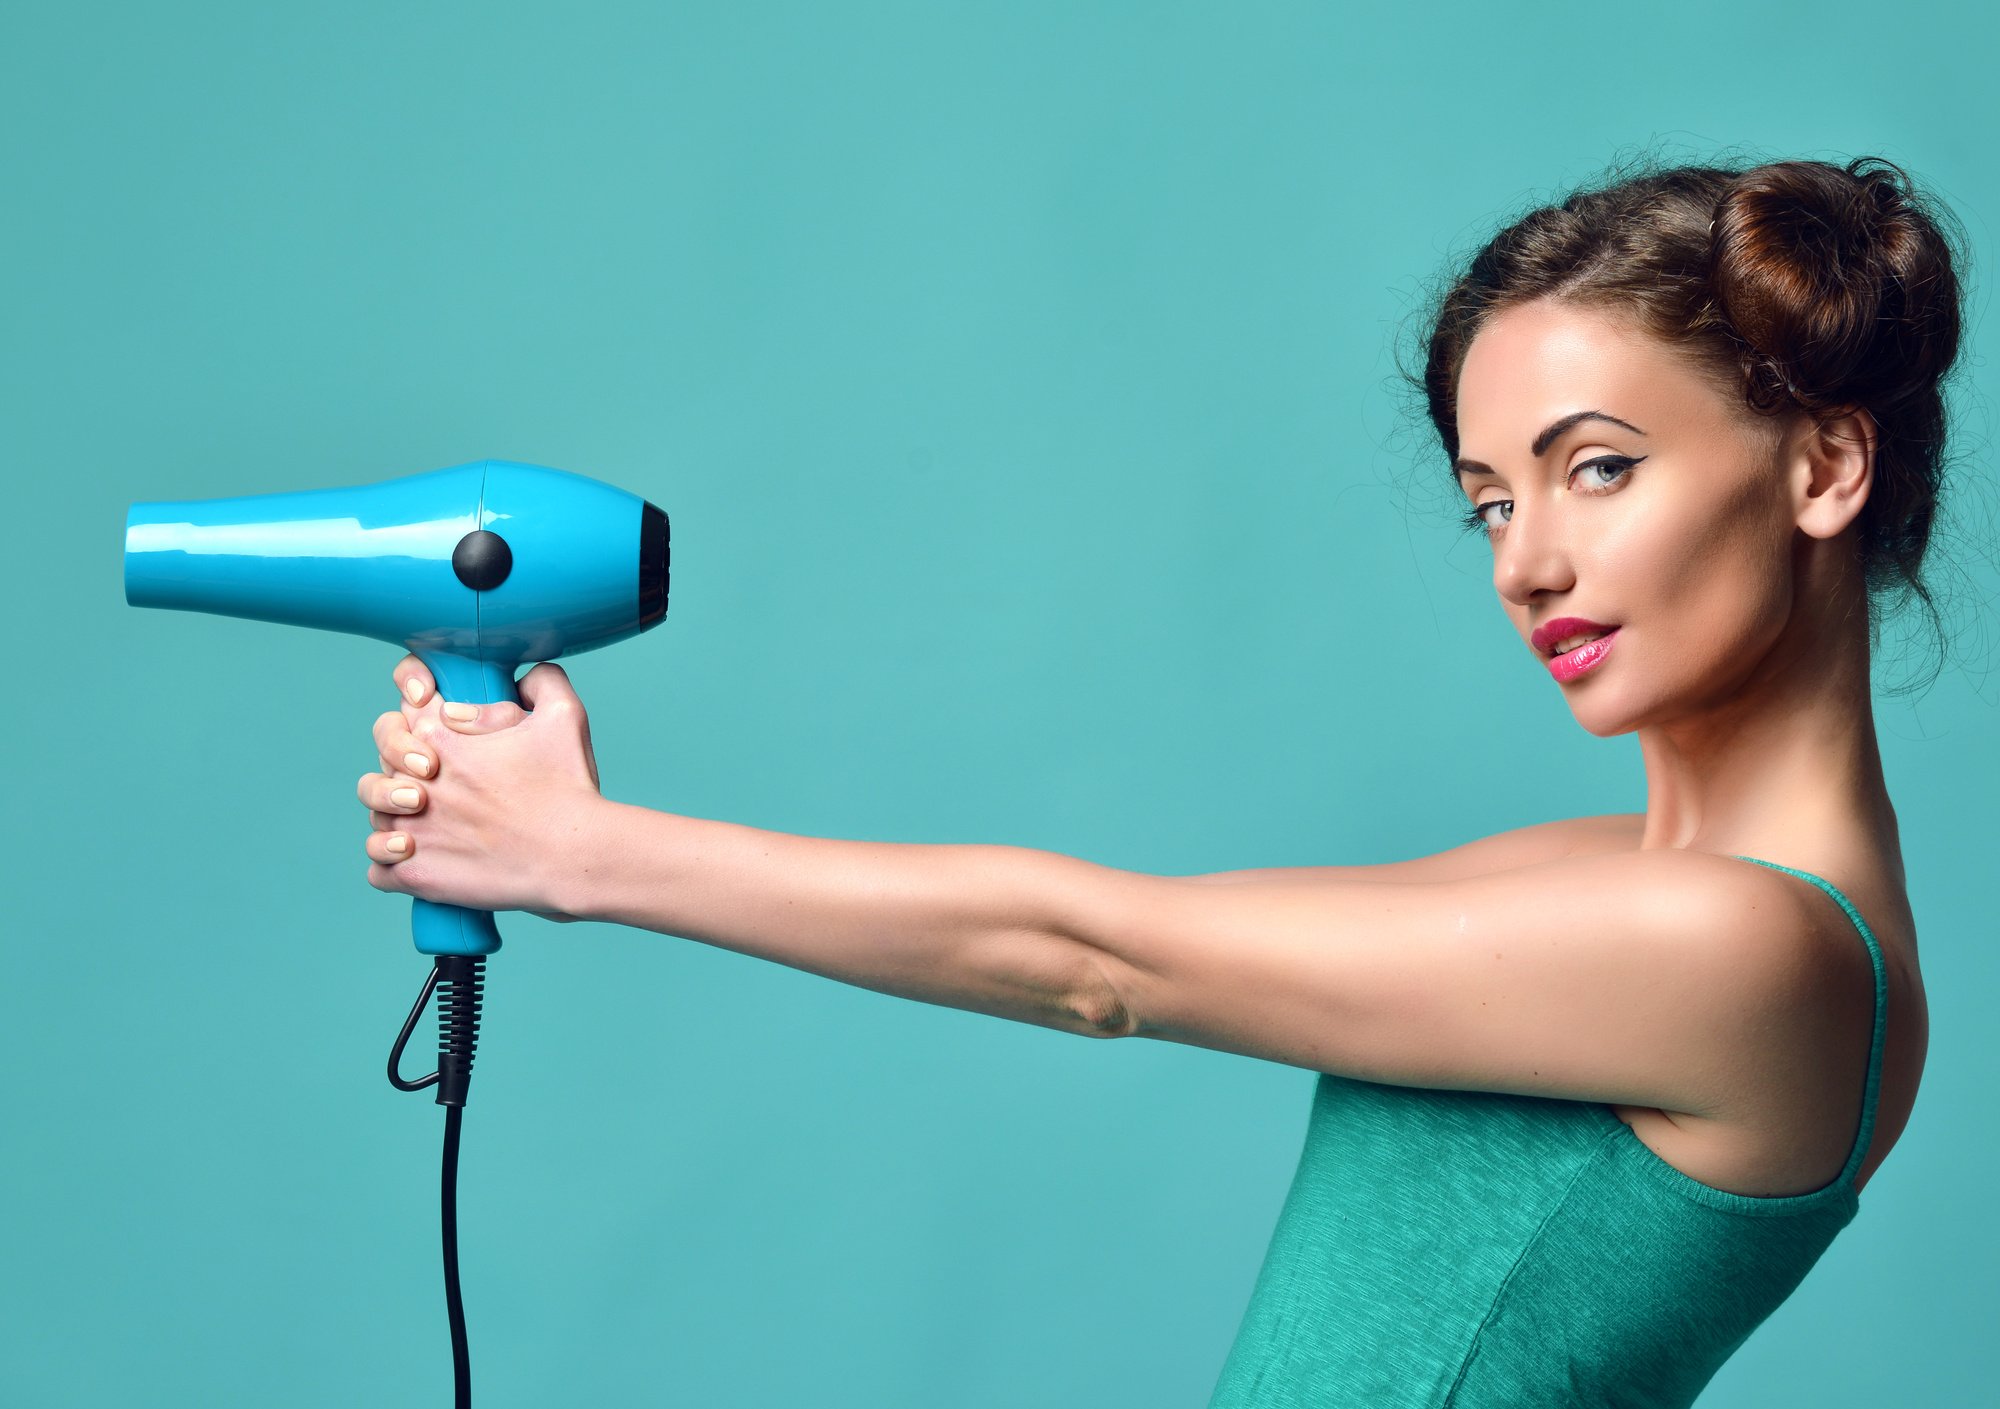 How to Dry Your Hair the Right Way: A Detailed Guide